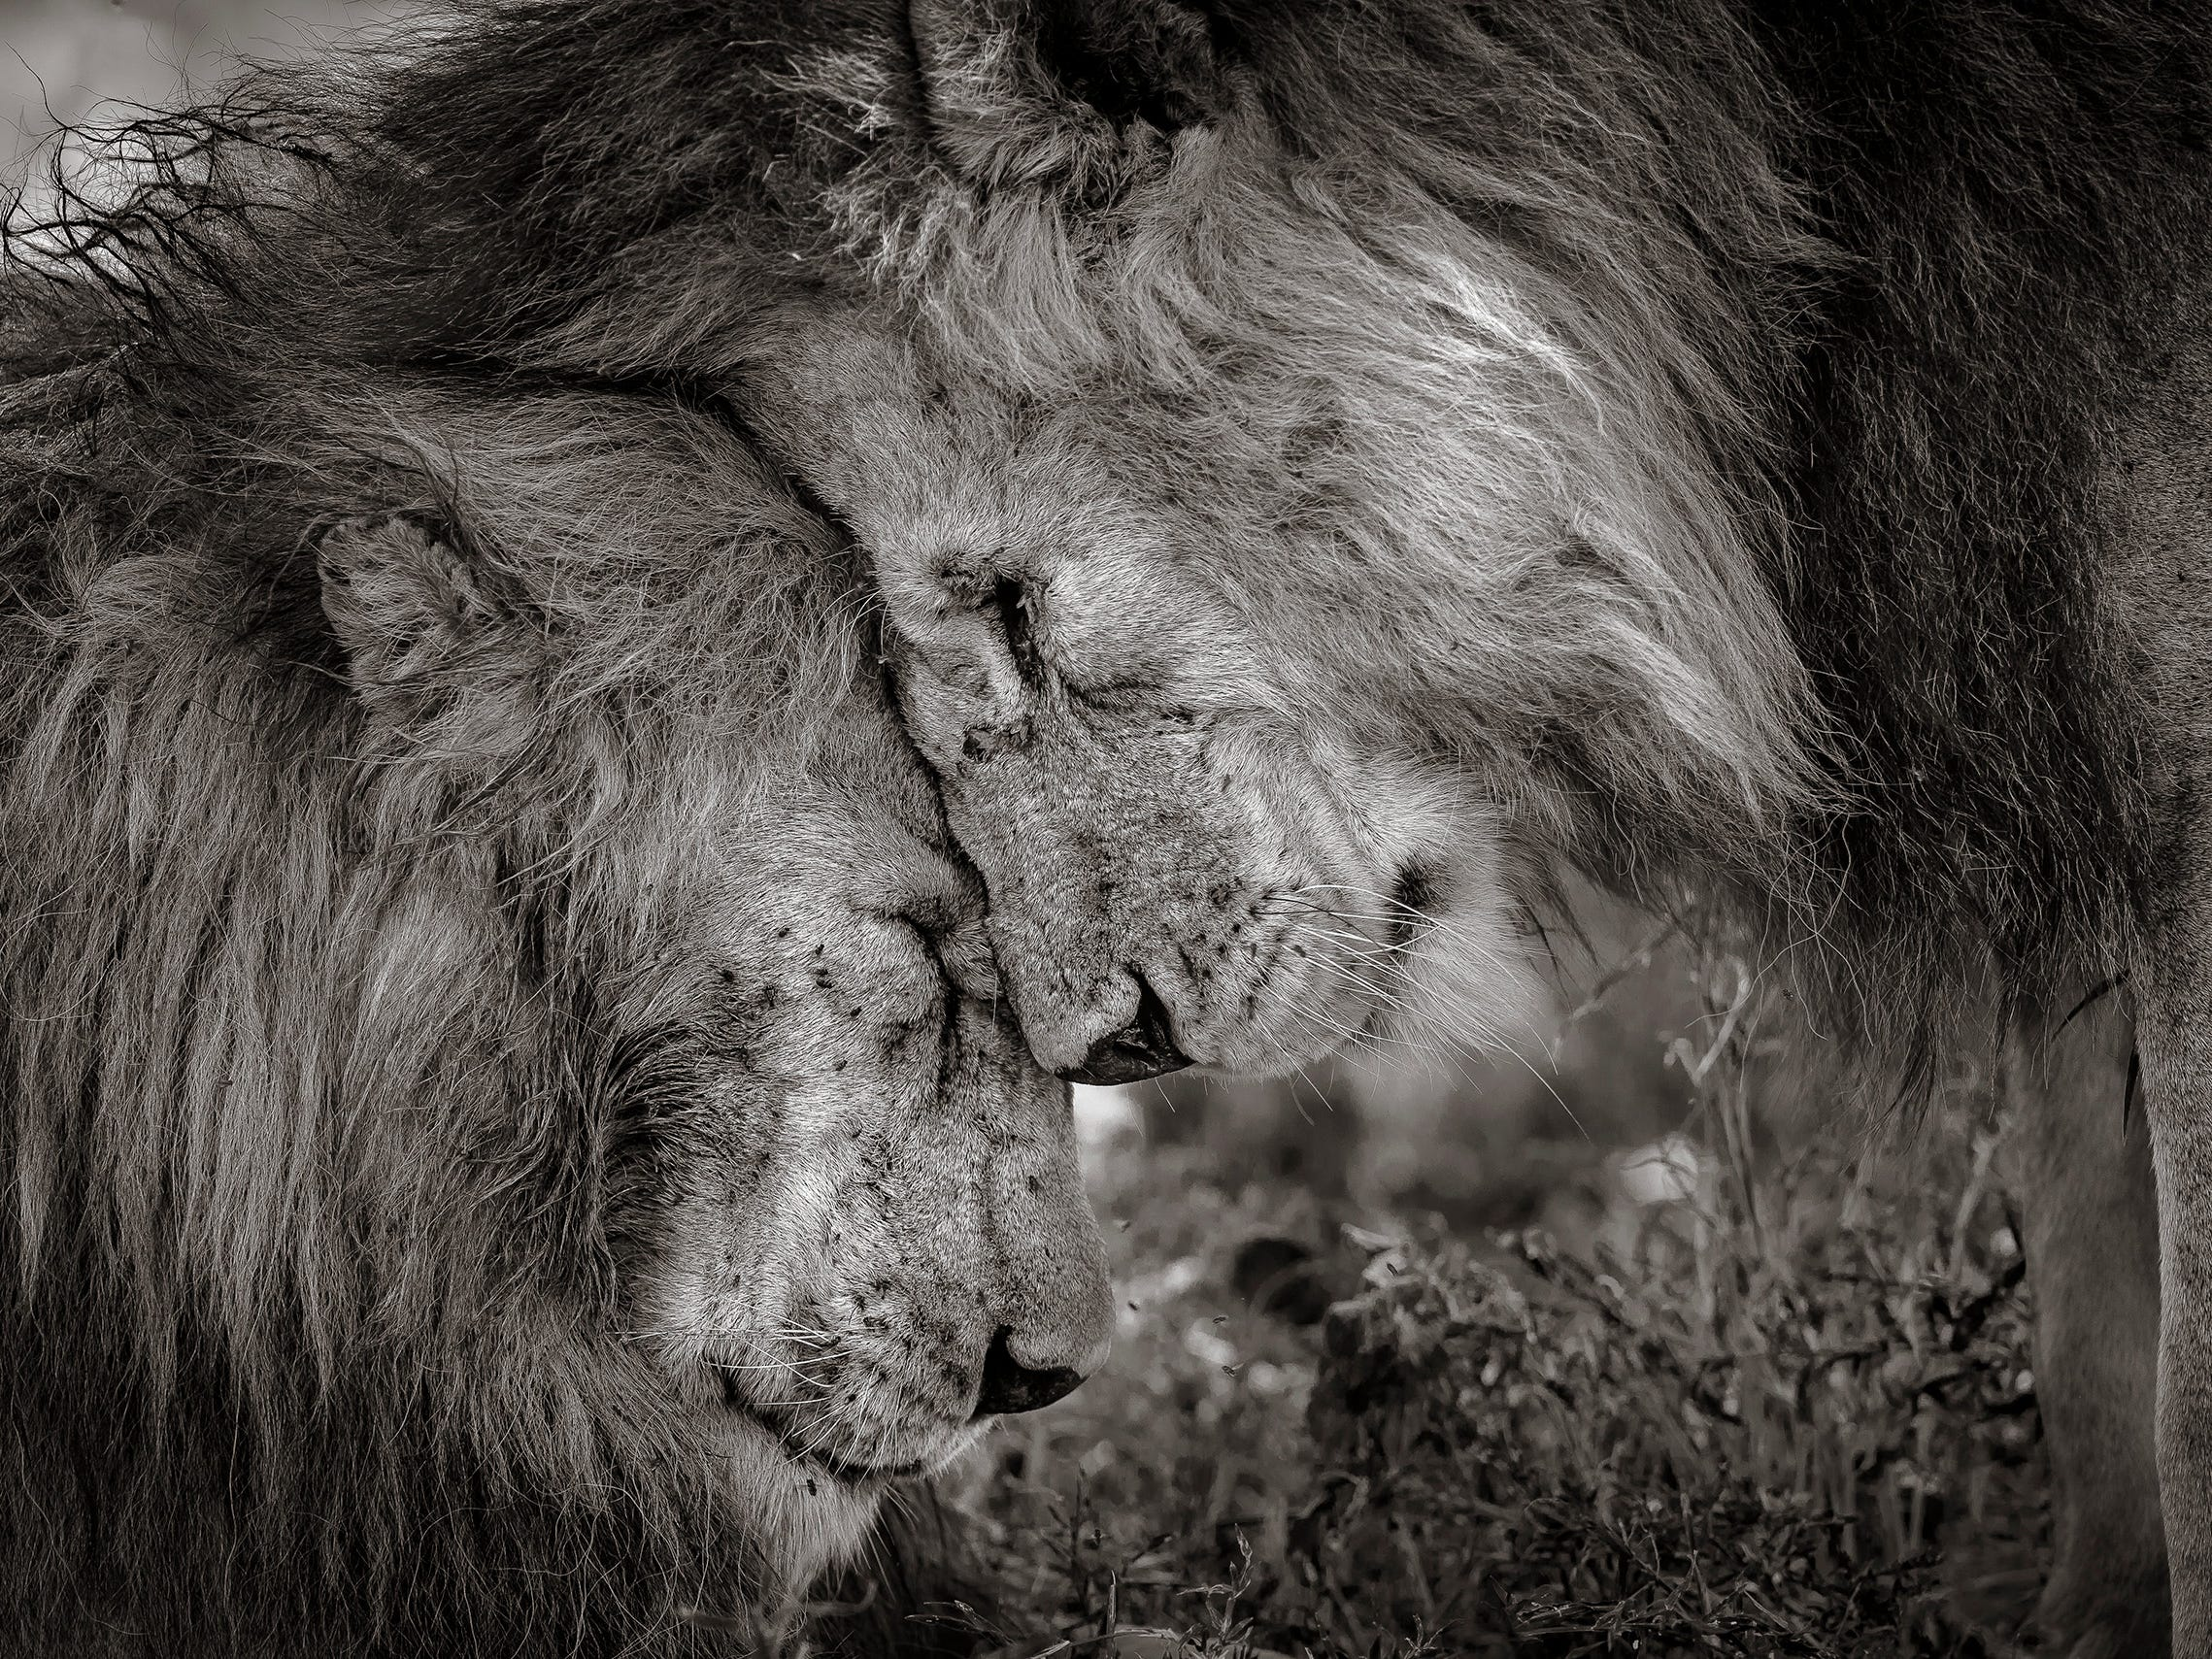 """London-based photographer David Lloyd's photograph """"Bond of Brothers"""" is the winner of the Wildlife Photographer of the Year LUMIX People's Choice Award. In the photo, two adult male lions, probably brothers, greeted and rubbed faces for 30 seconds before settling down."""